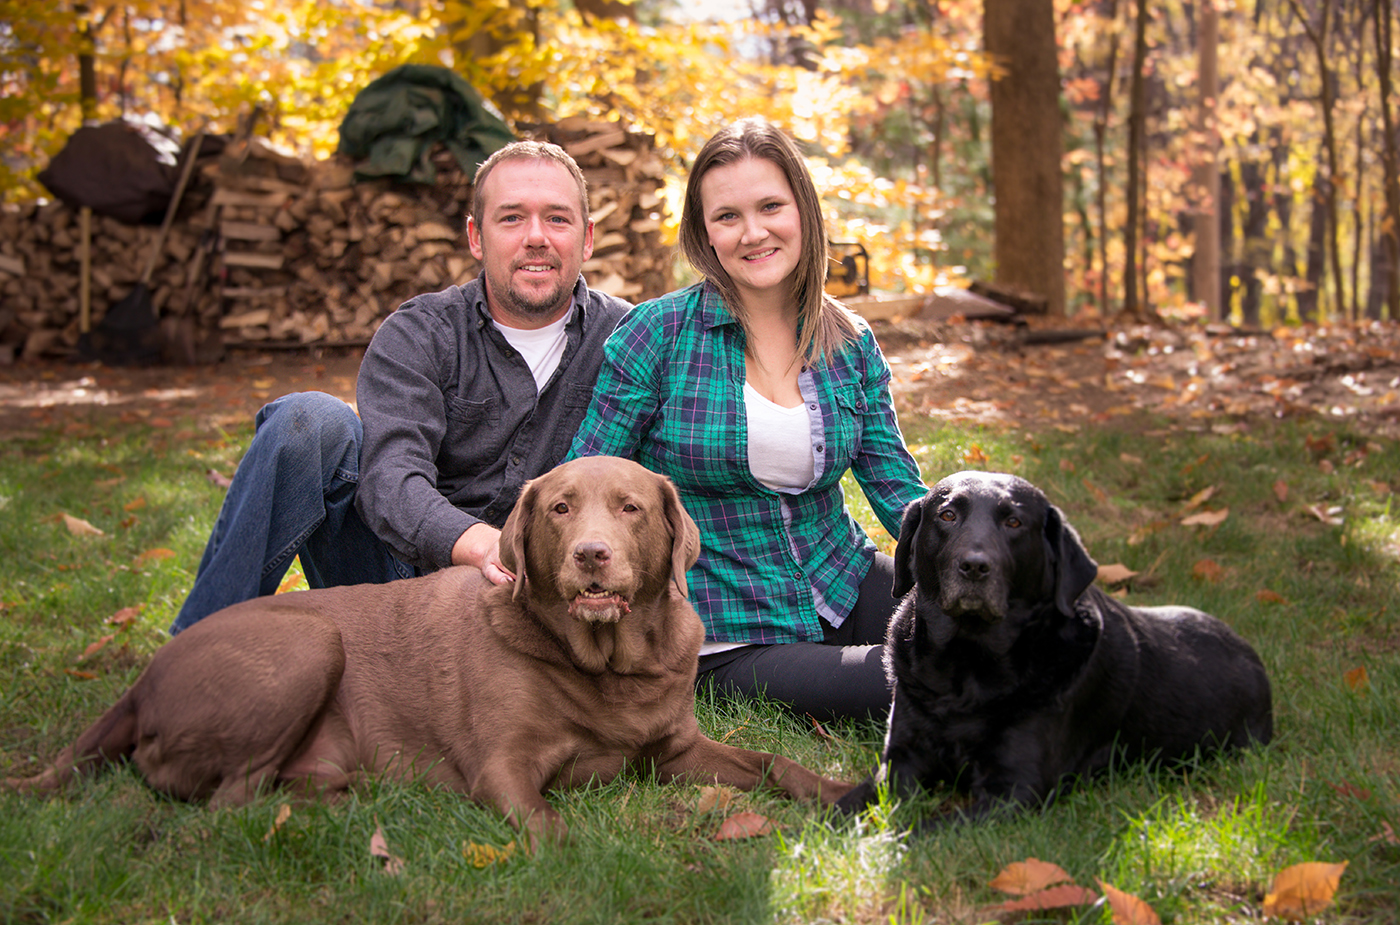 All Occasions Photography Albany NY - Family Photography Example 11 with Family Dogs